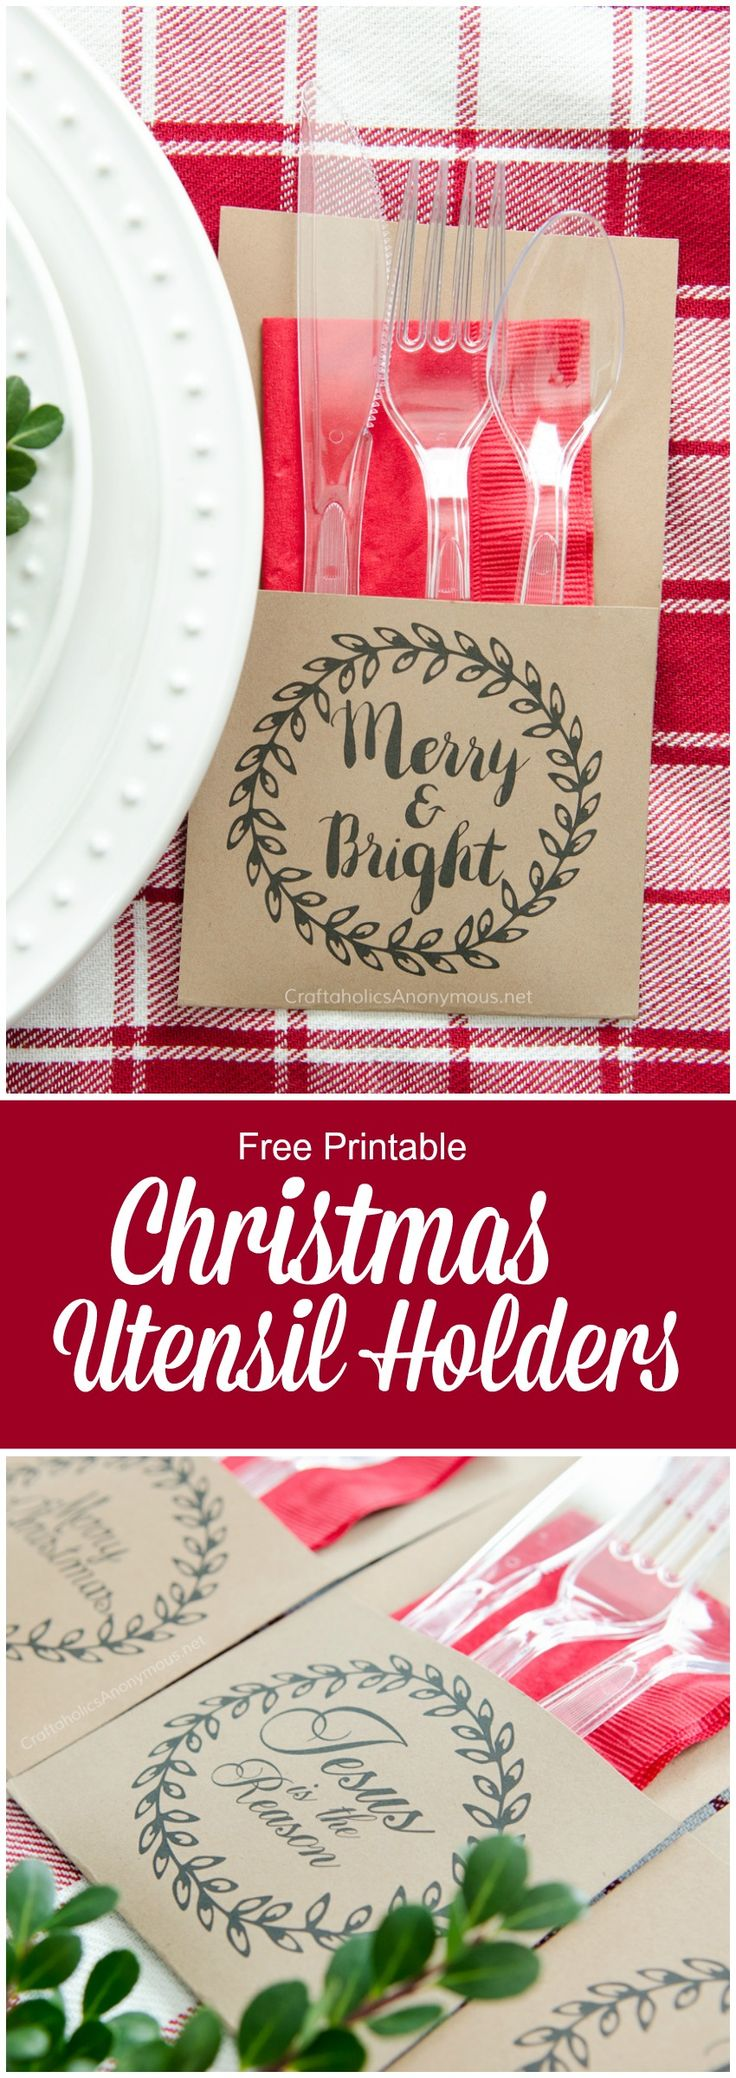 Free Christmas Printable Utensil Holders. Print off and glue together. So easy! Cheap and easy DIY Christmas party decor